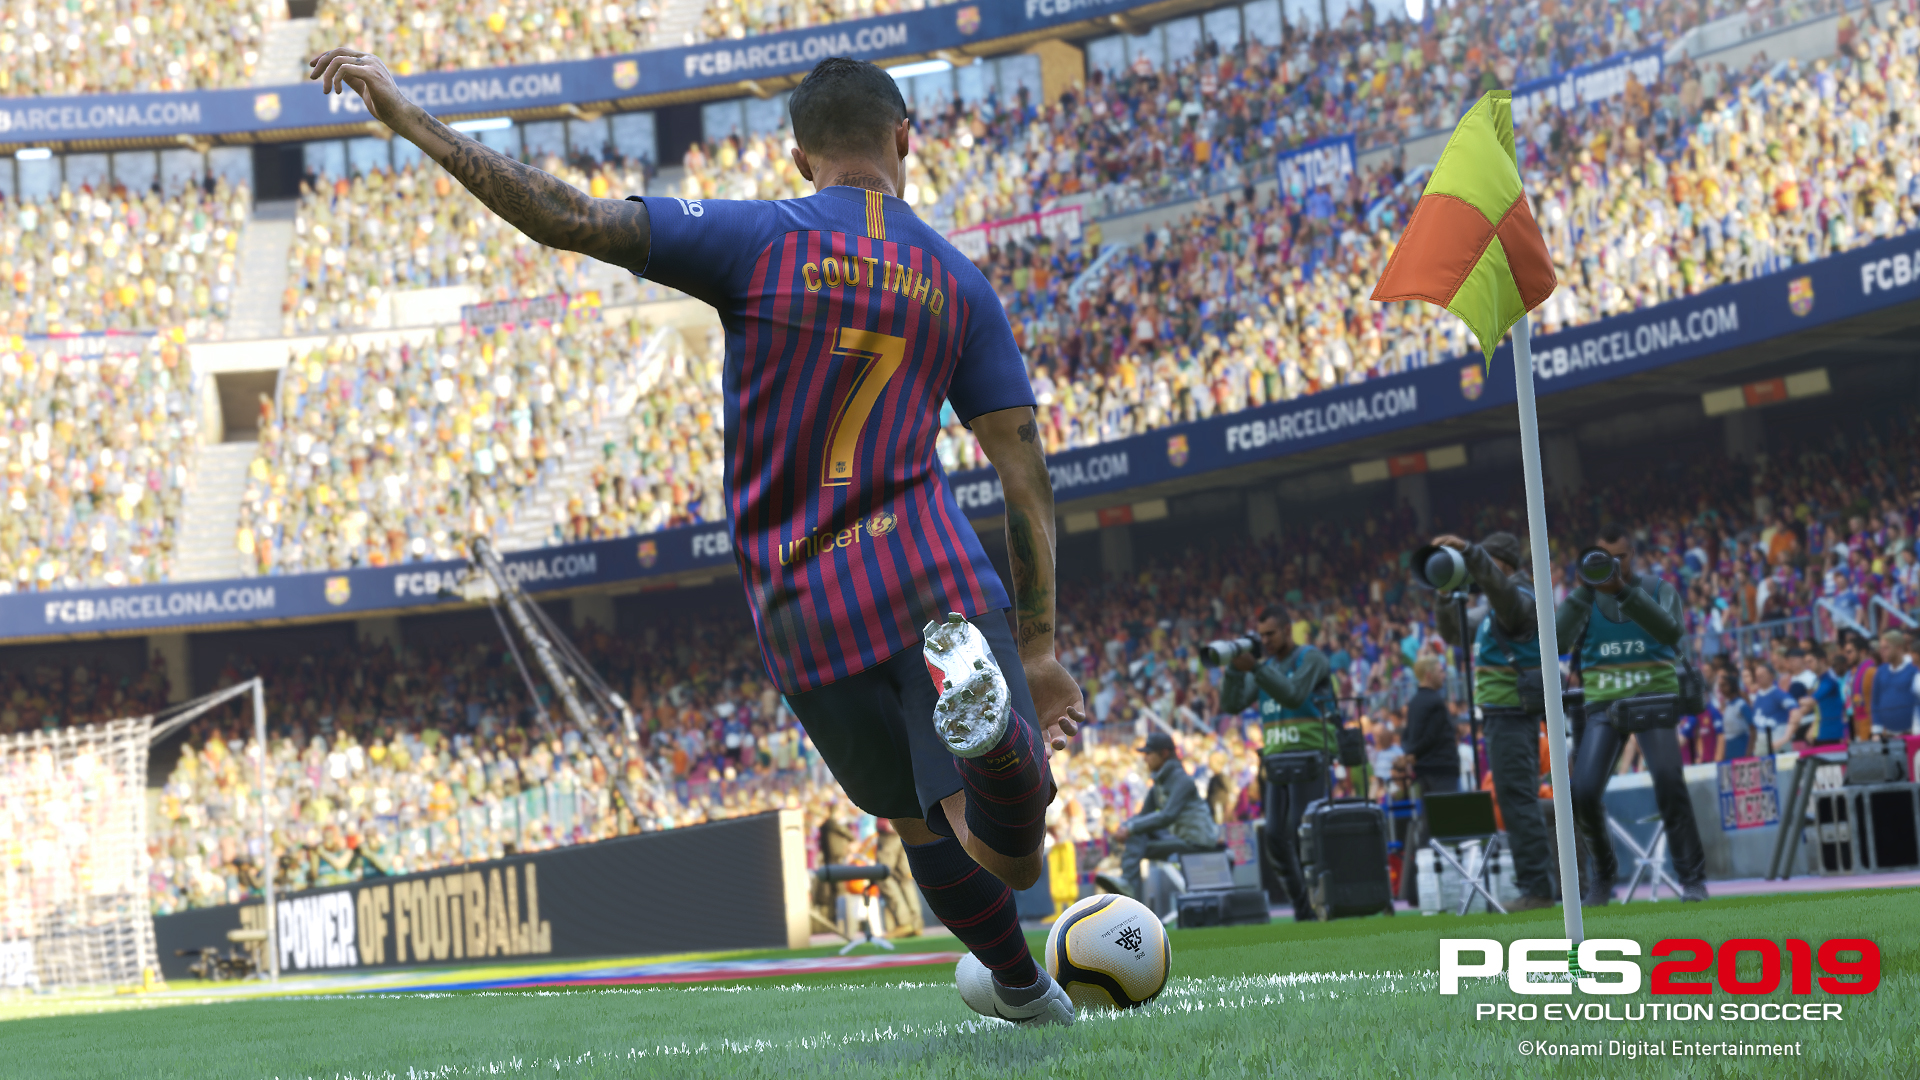 c8ba098b6c50 Pro Evolution Soccer 2019 Review - A Great Game in Need of Fixing